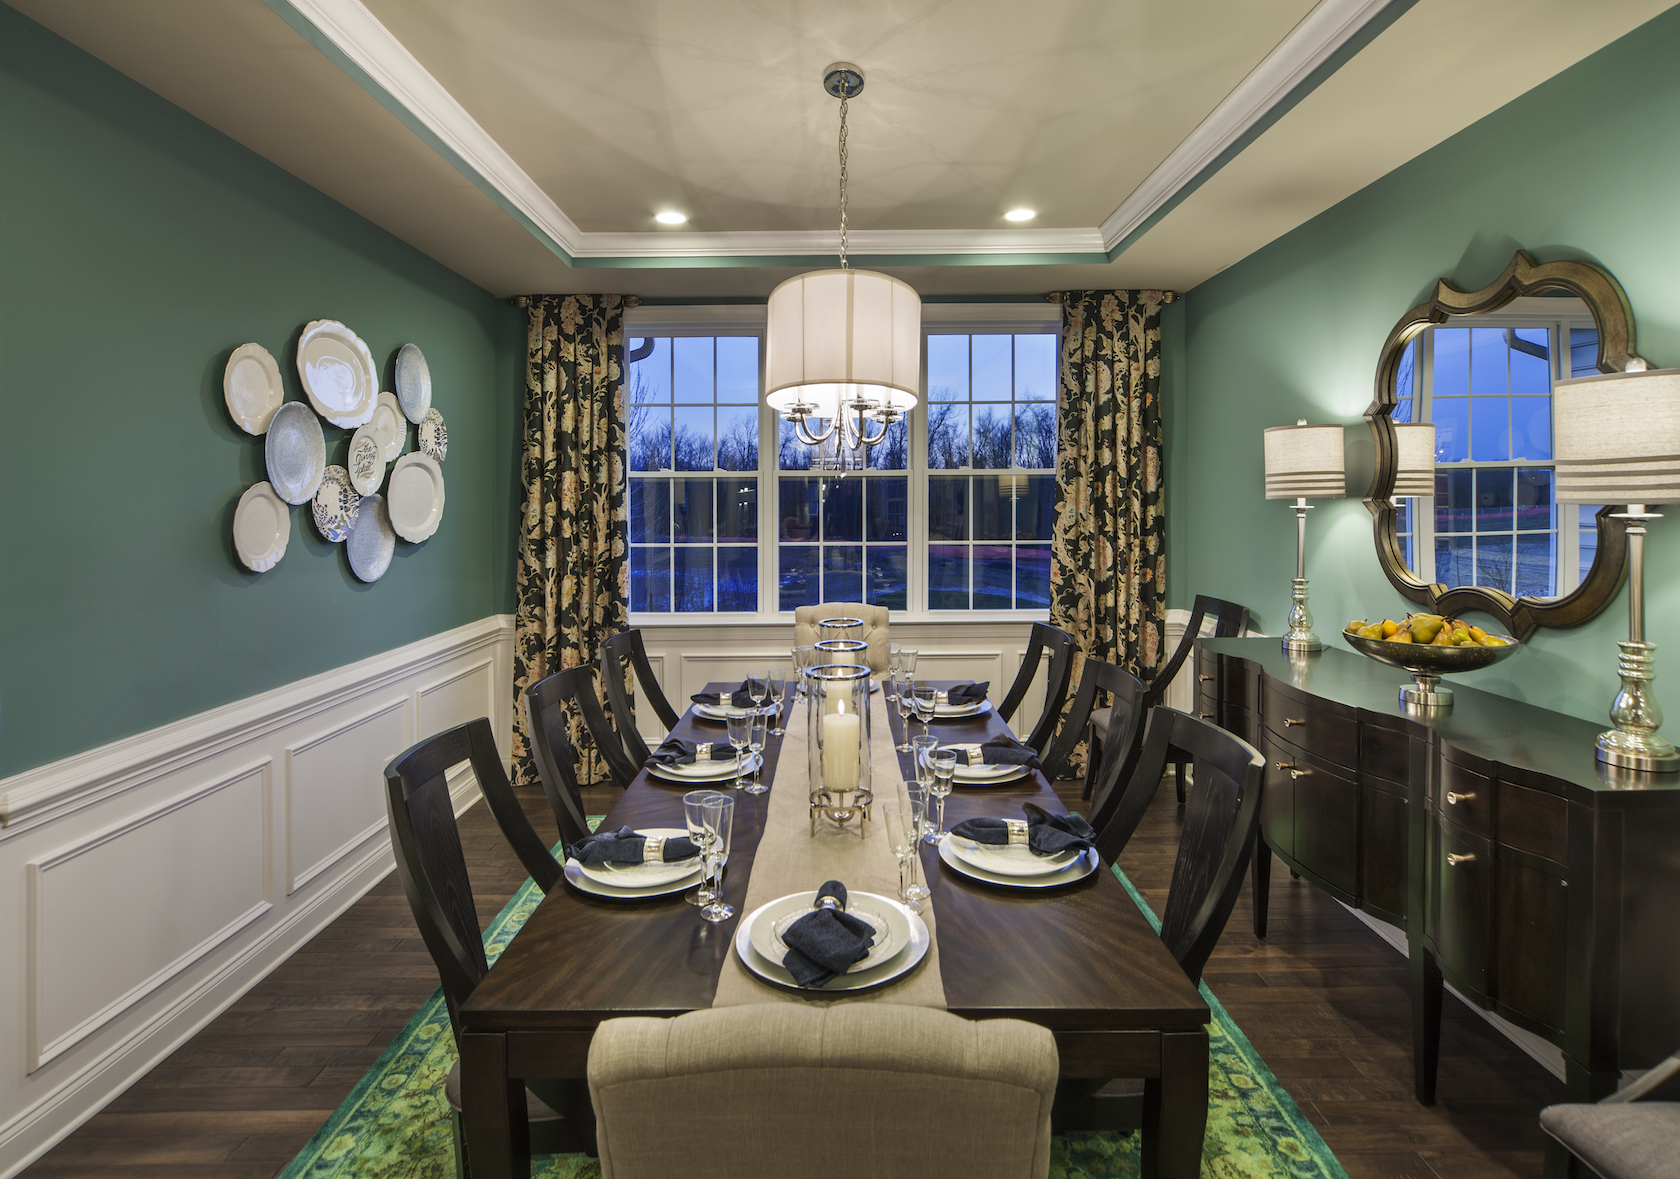 Dining room with green color walls.